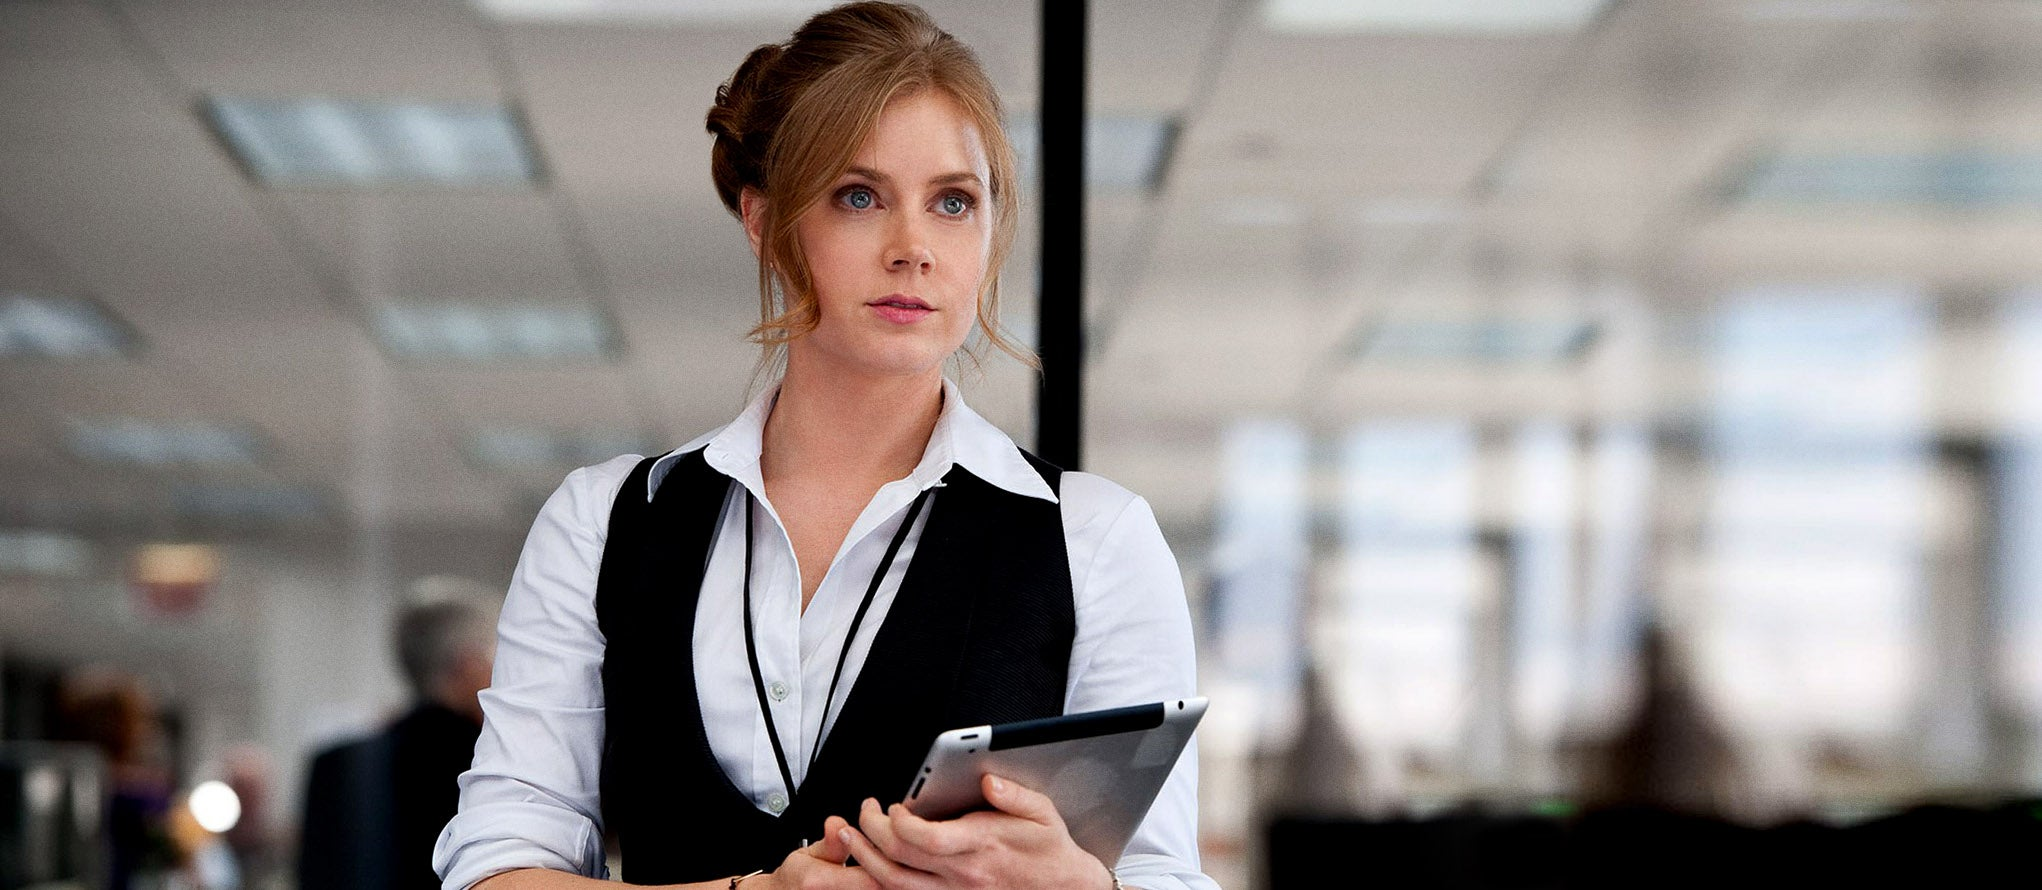 Man Of Steel Spoiler: Does Lois Lane Know Who Superman Is?